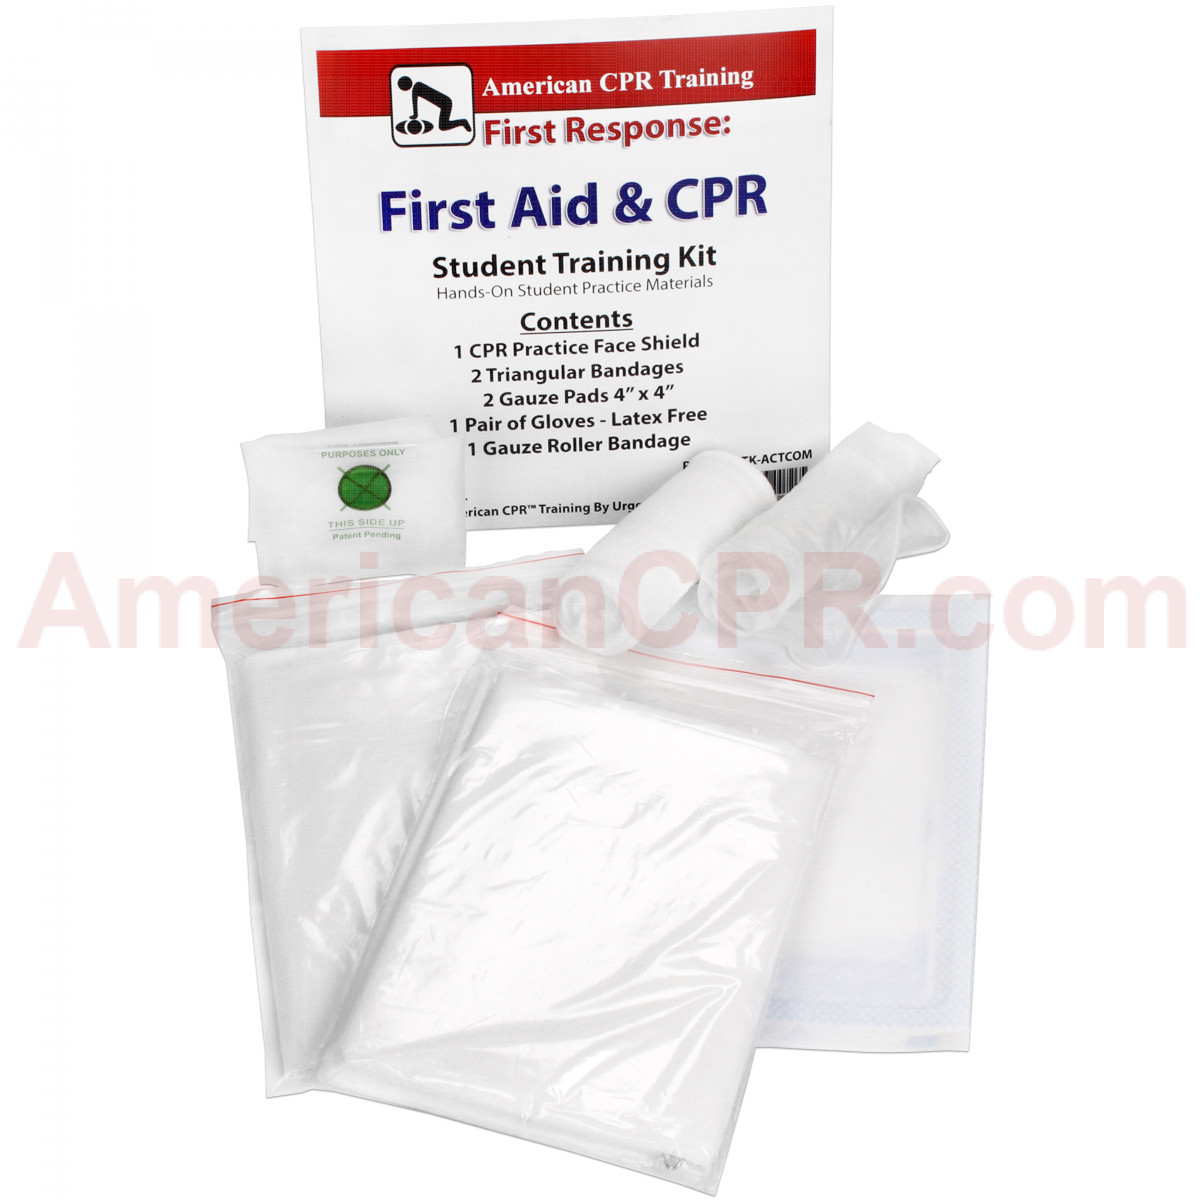 CPR & First Aid Student Training Kit, 8 Pieces - American CPR Training